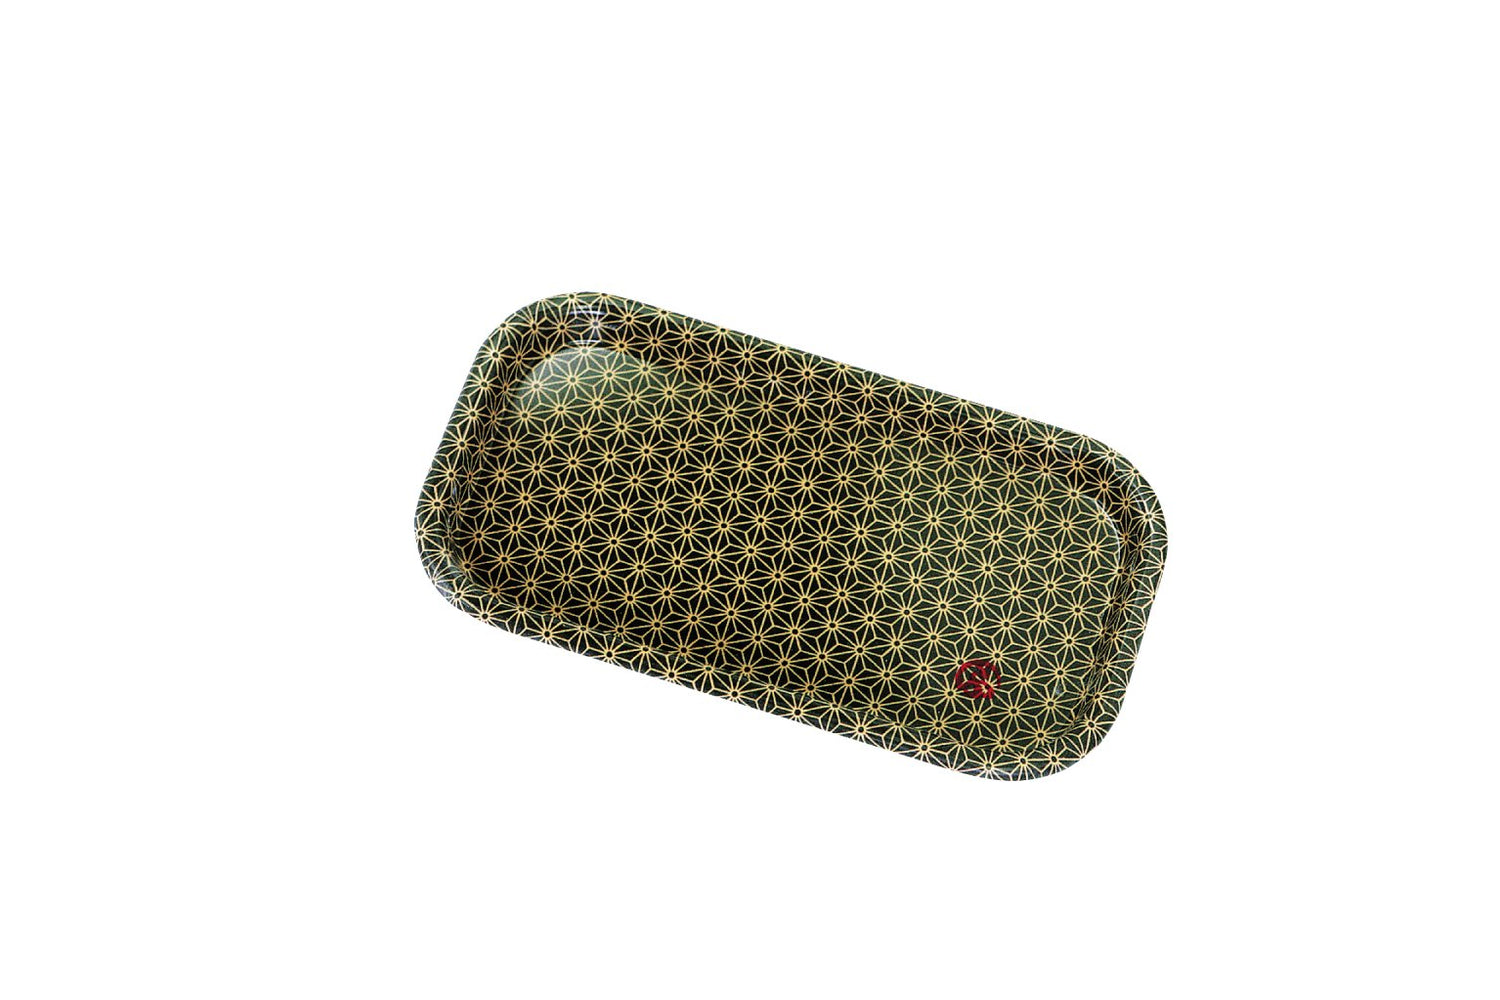 Wafu Cloth Cafe Tray Mini | Asanoha Leaf by Hakoya - Bento&co Japanese Bento Lunch Boxes and Kitchenware Specialists